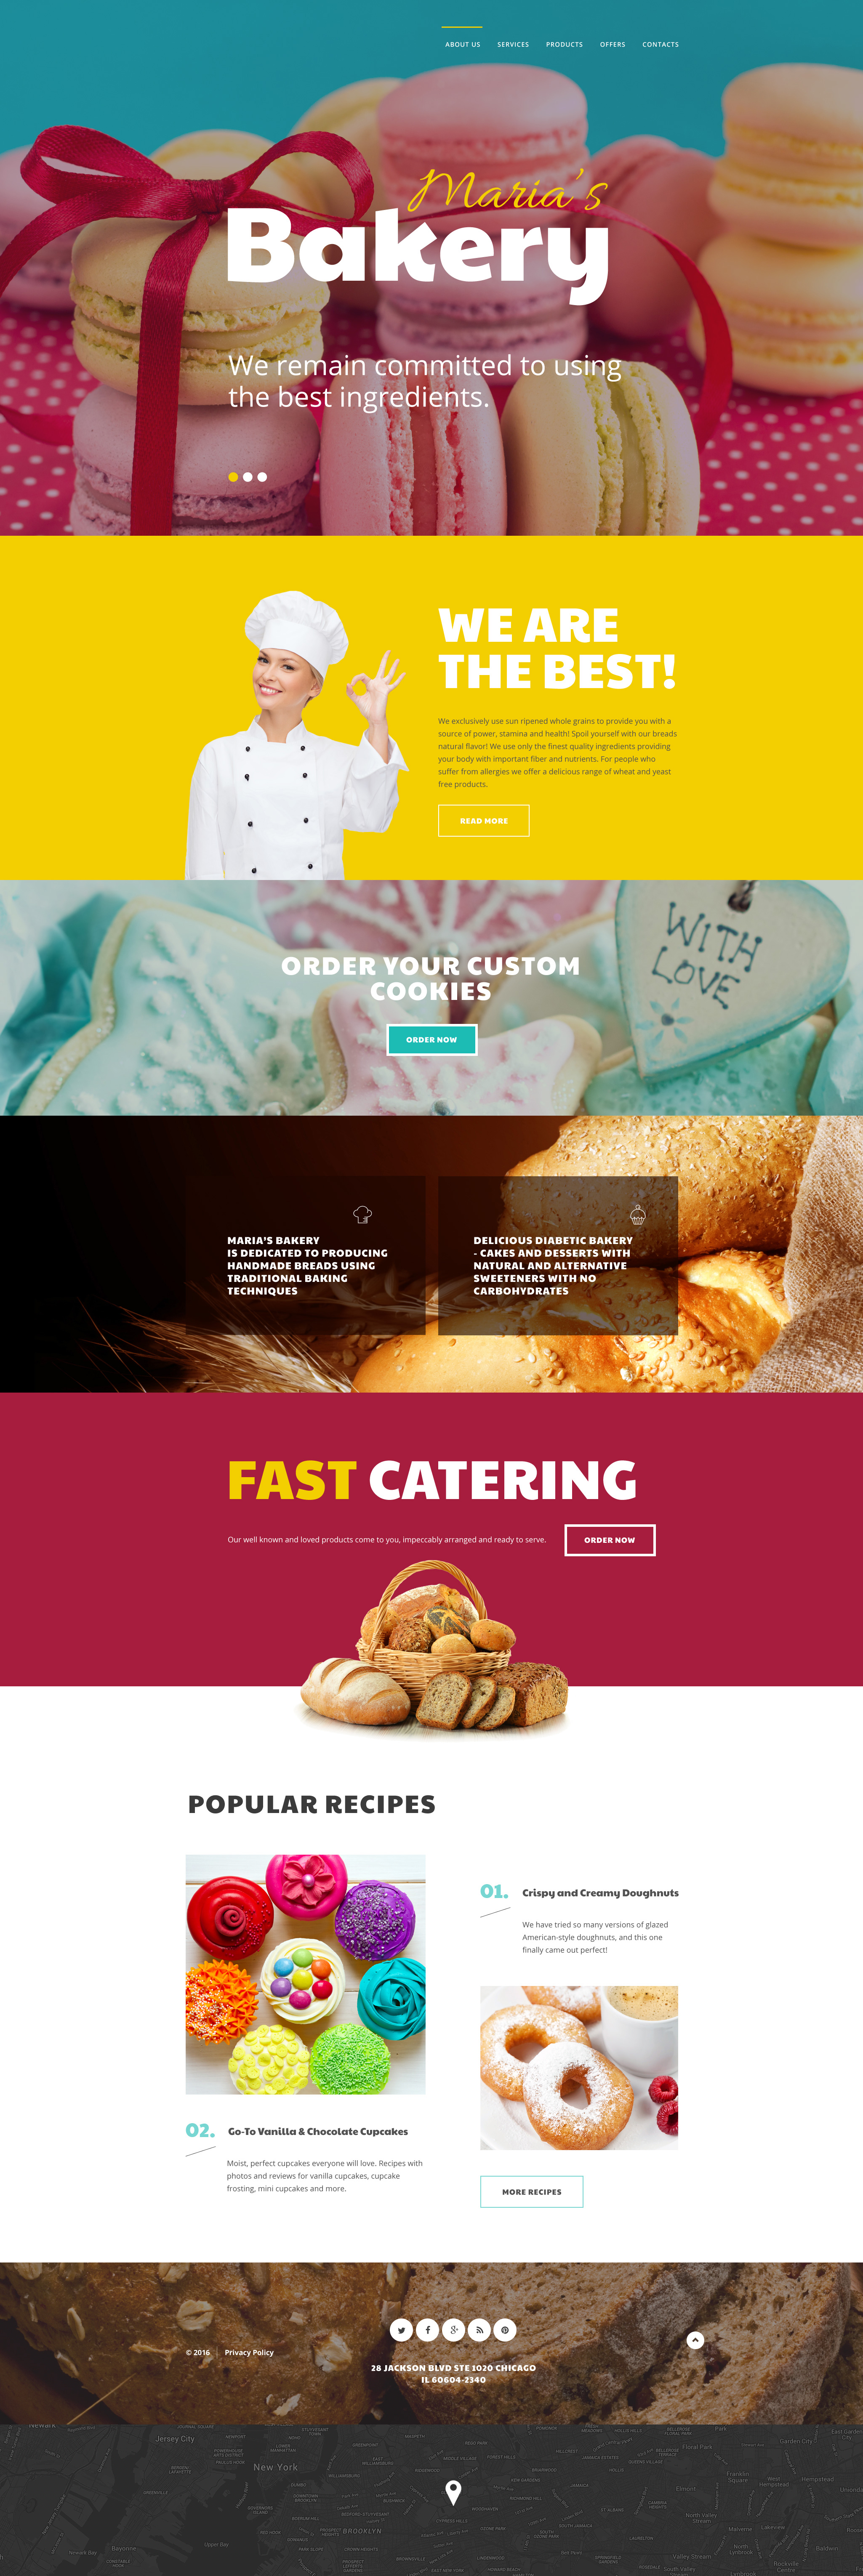 Maria's Bakery Website Template